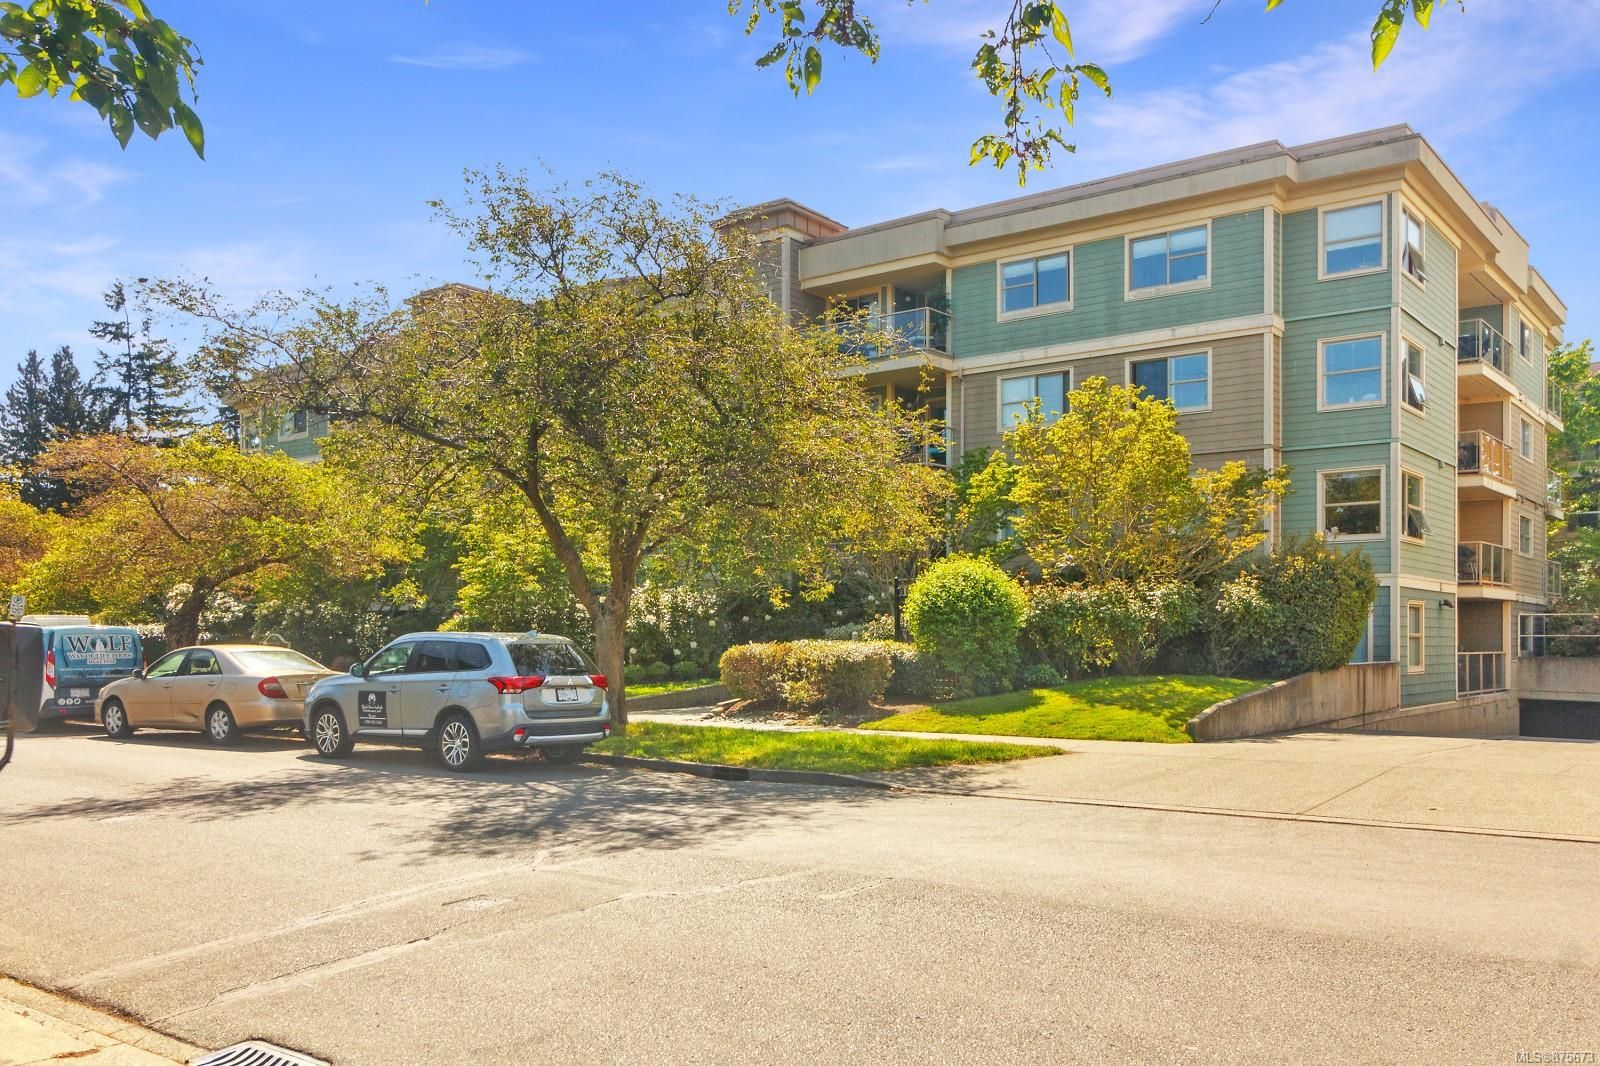 Main Photo: 202 1025 Meares St in : Vi Downtown Condo for sale (Victoria)  : MLS®# 875673